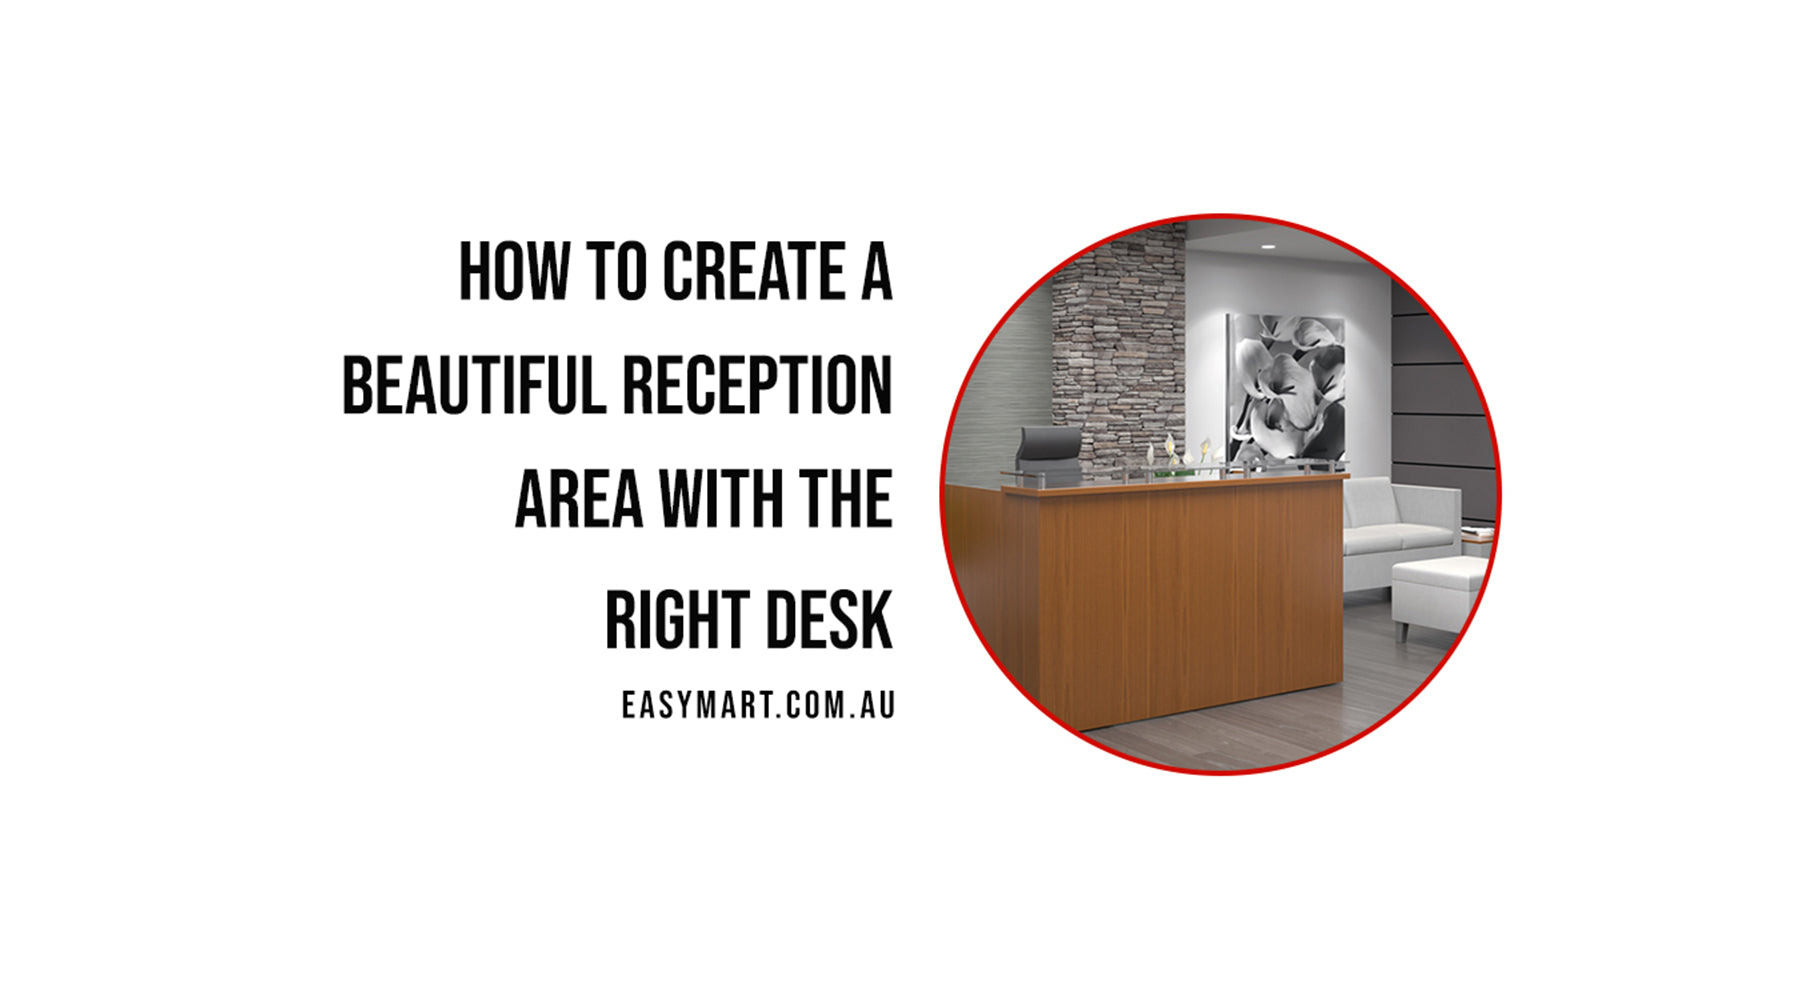 How to create a beautiful reception area with the right desk